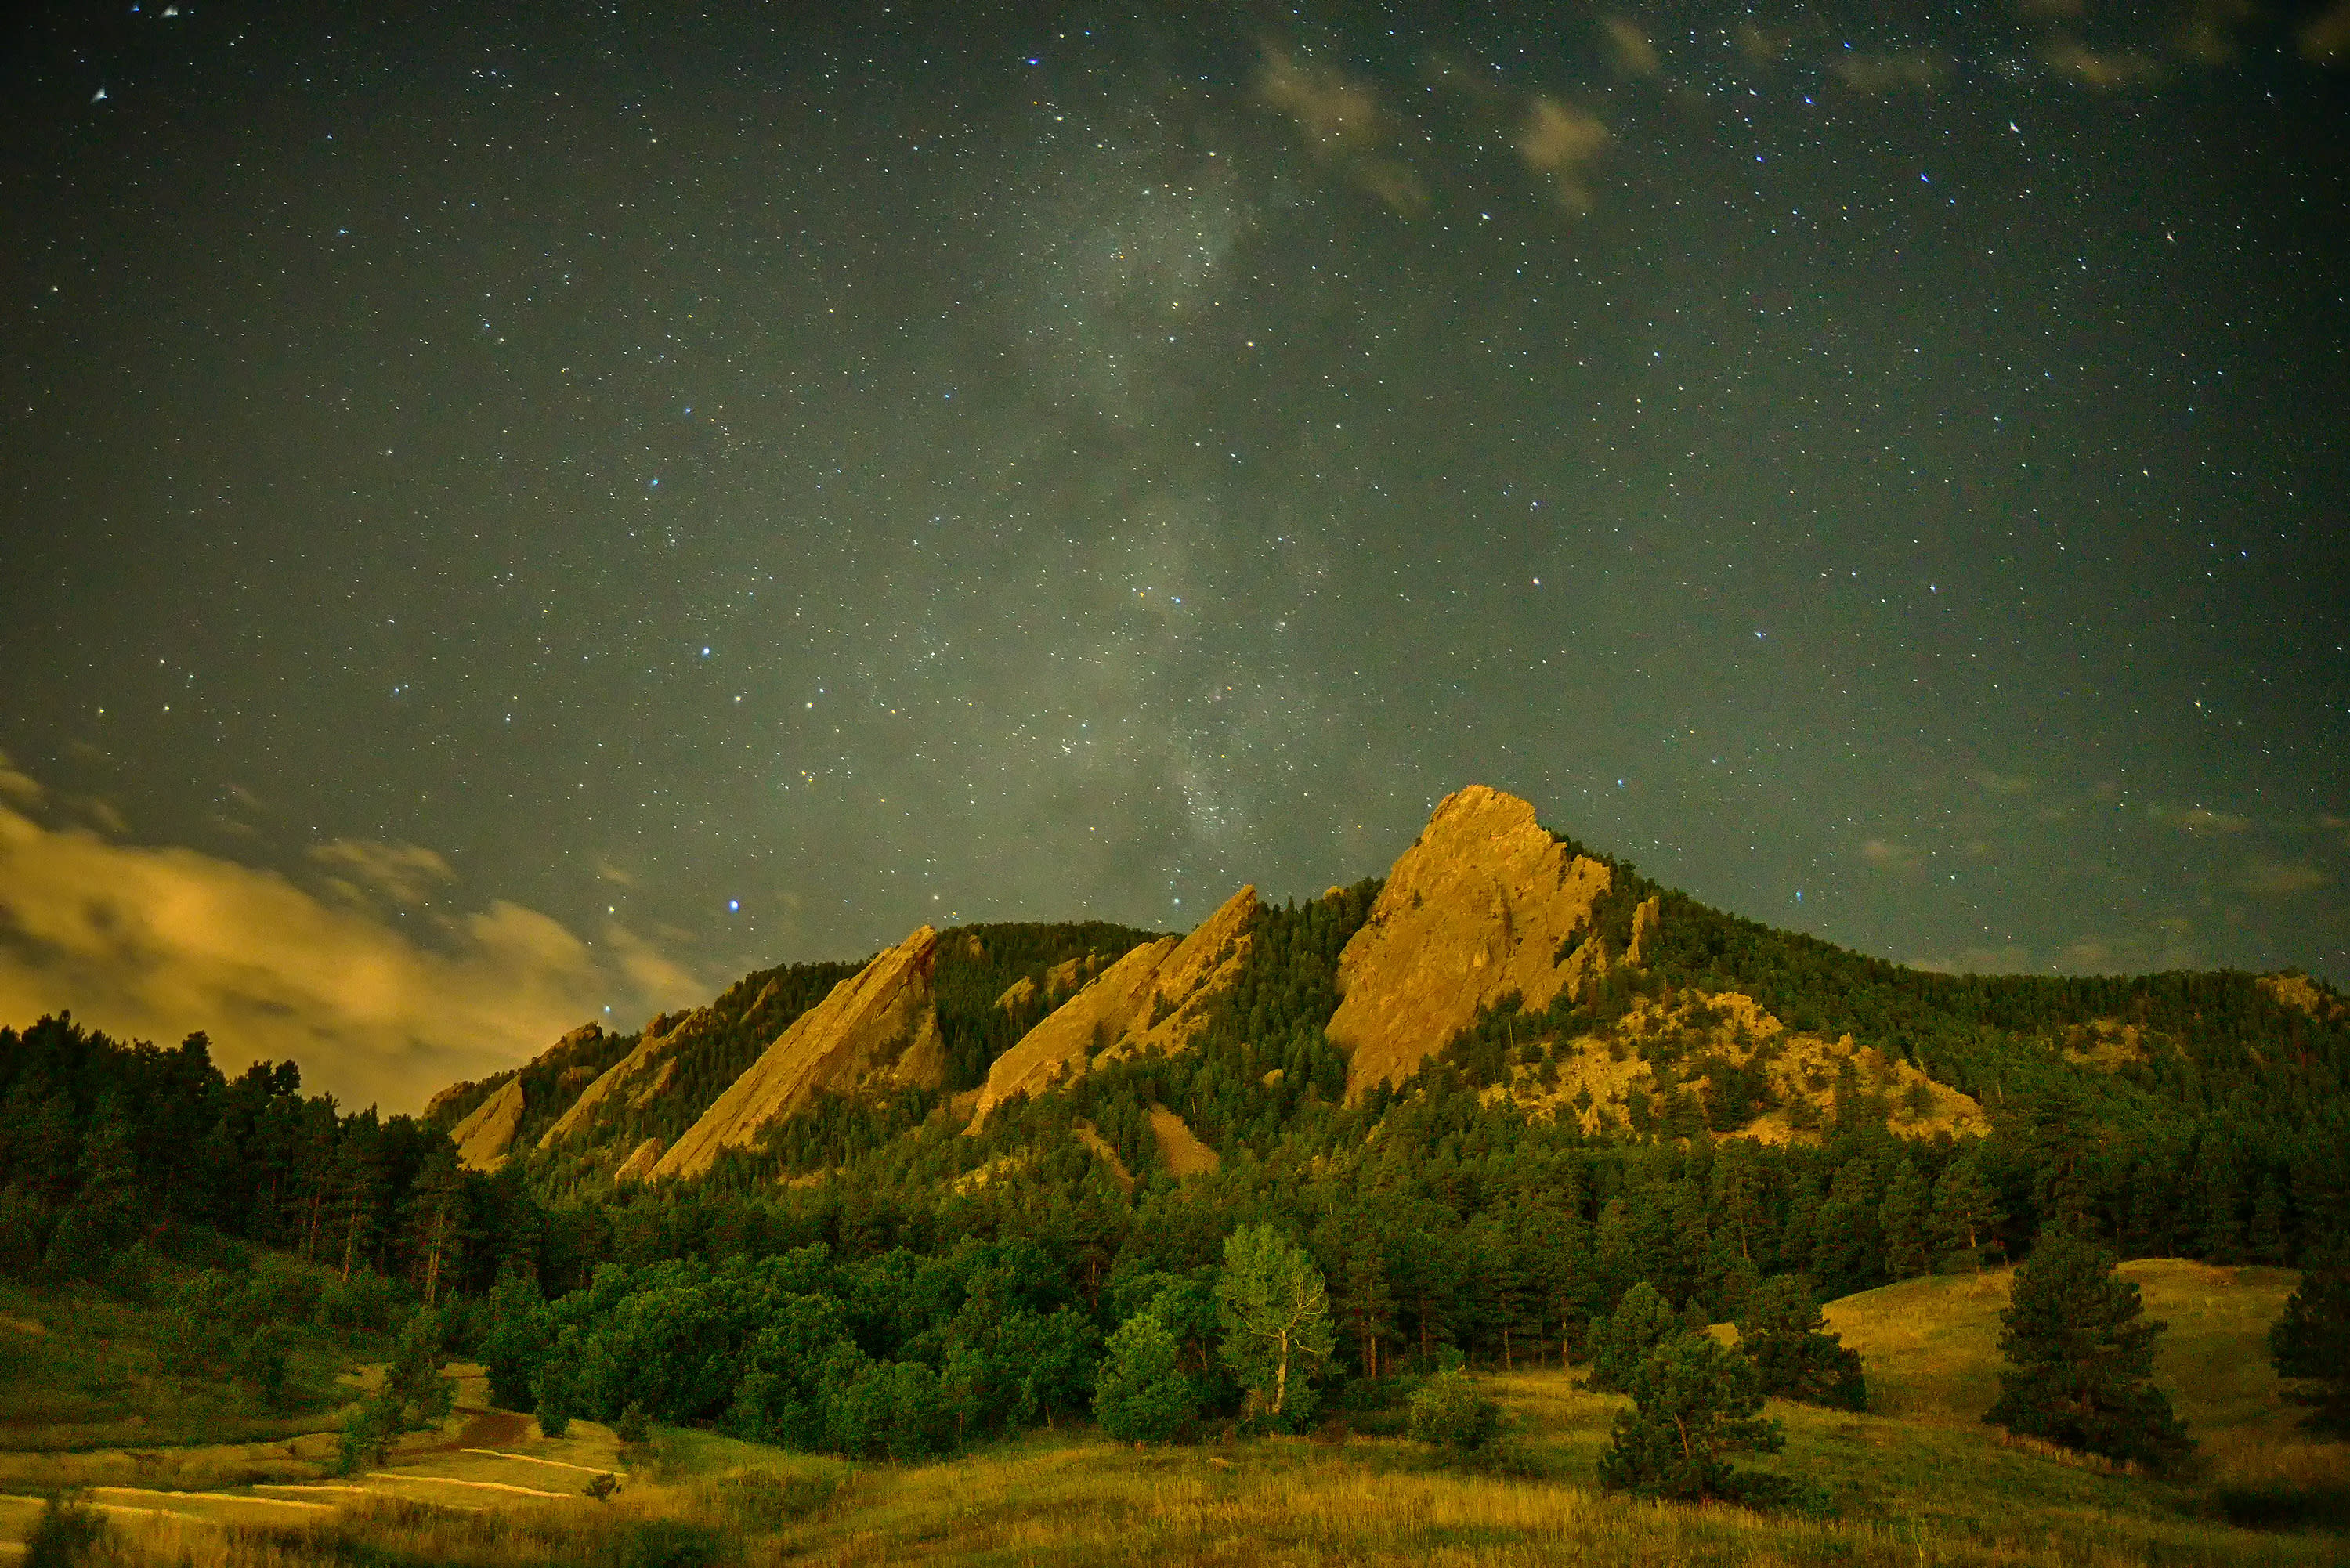 <div class='title'>           Night Sky over the Flatirons         </div>                 <div class='description'>           Stars fill the night sky over the Flatirons in Boulder, Colorado         </div>